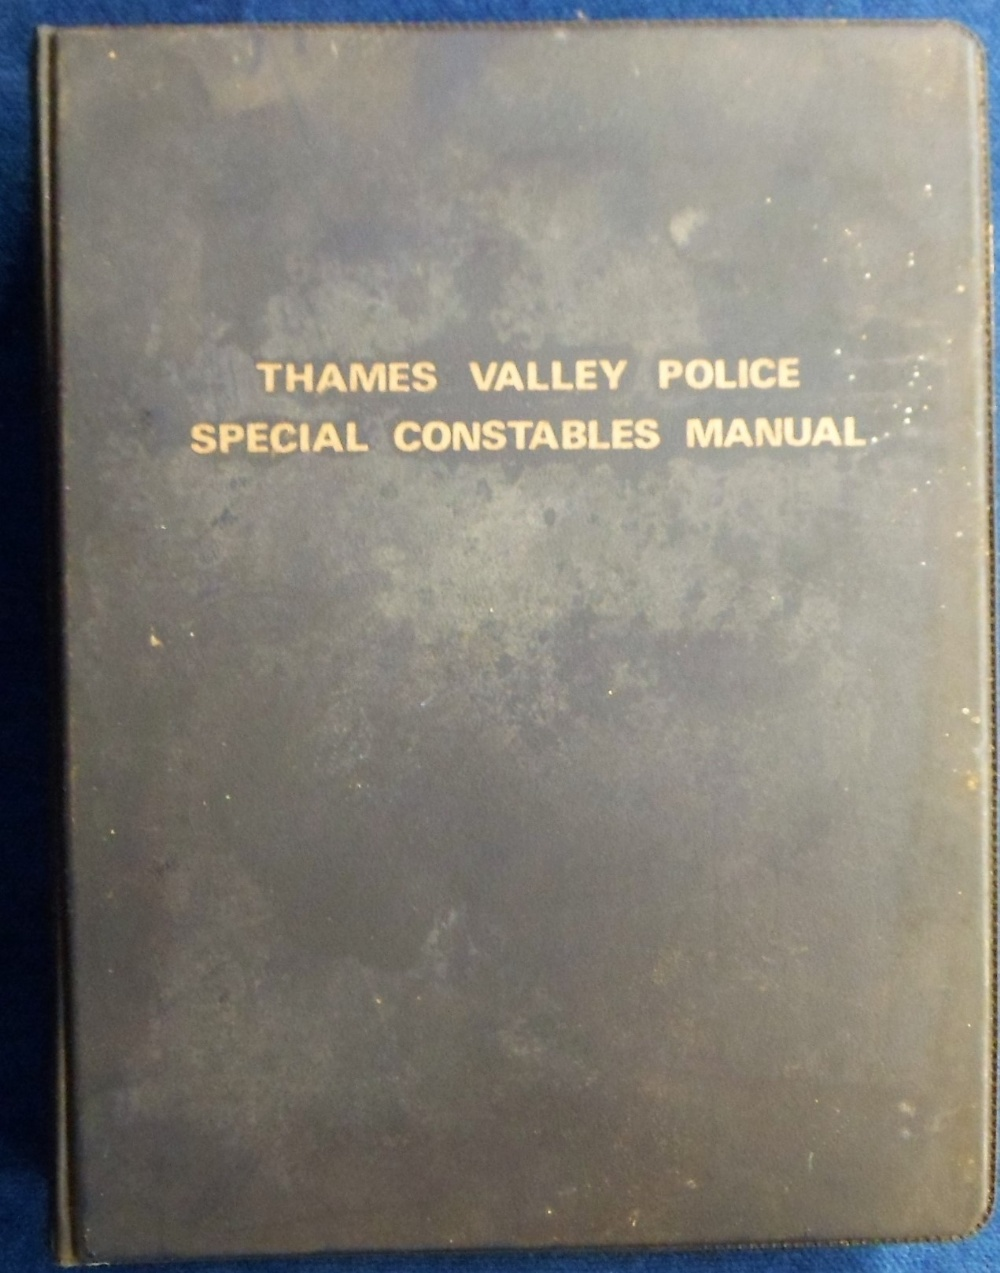 Lot 38 - Police Memorabilia, a copy of the 'Thames Valley Police Special Constables Manual' bound in blue